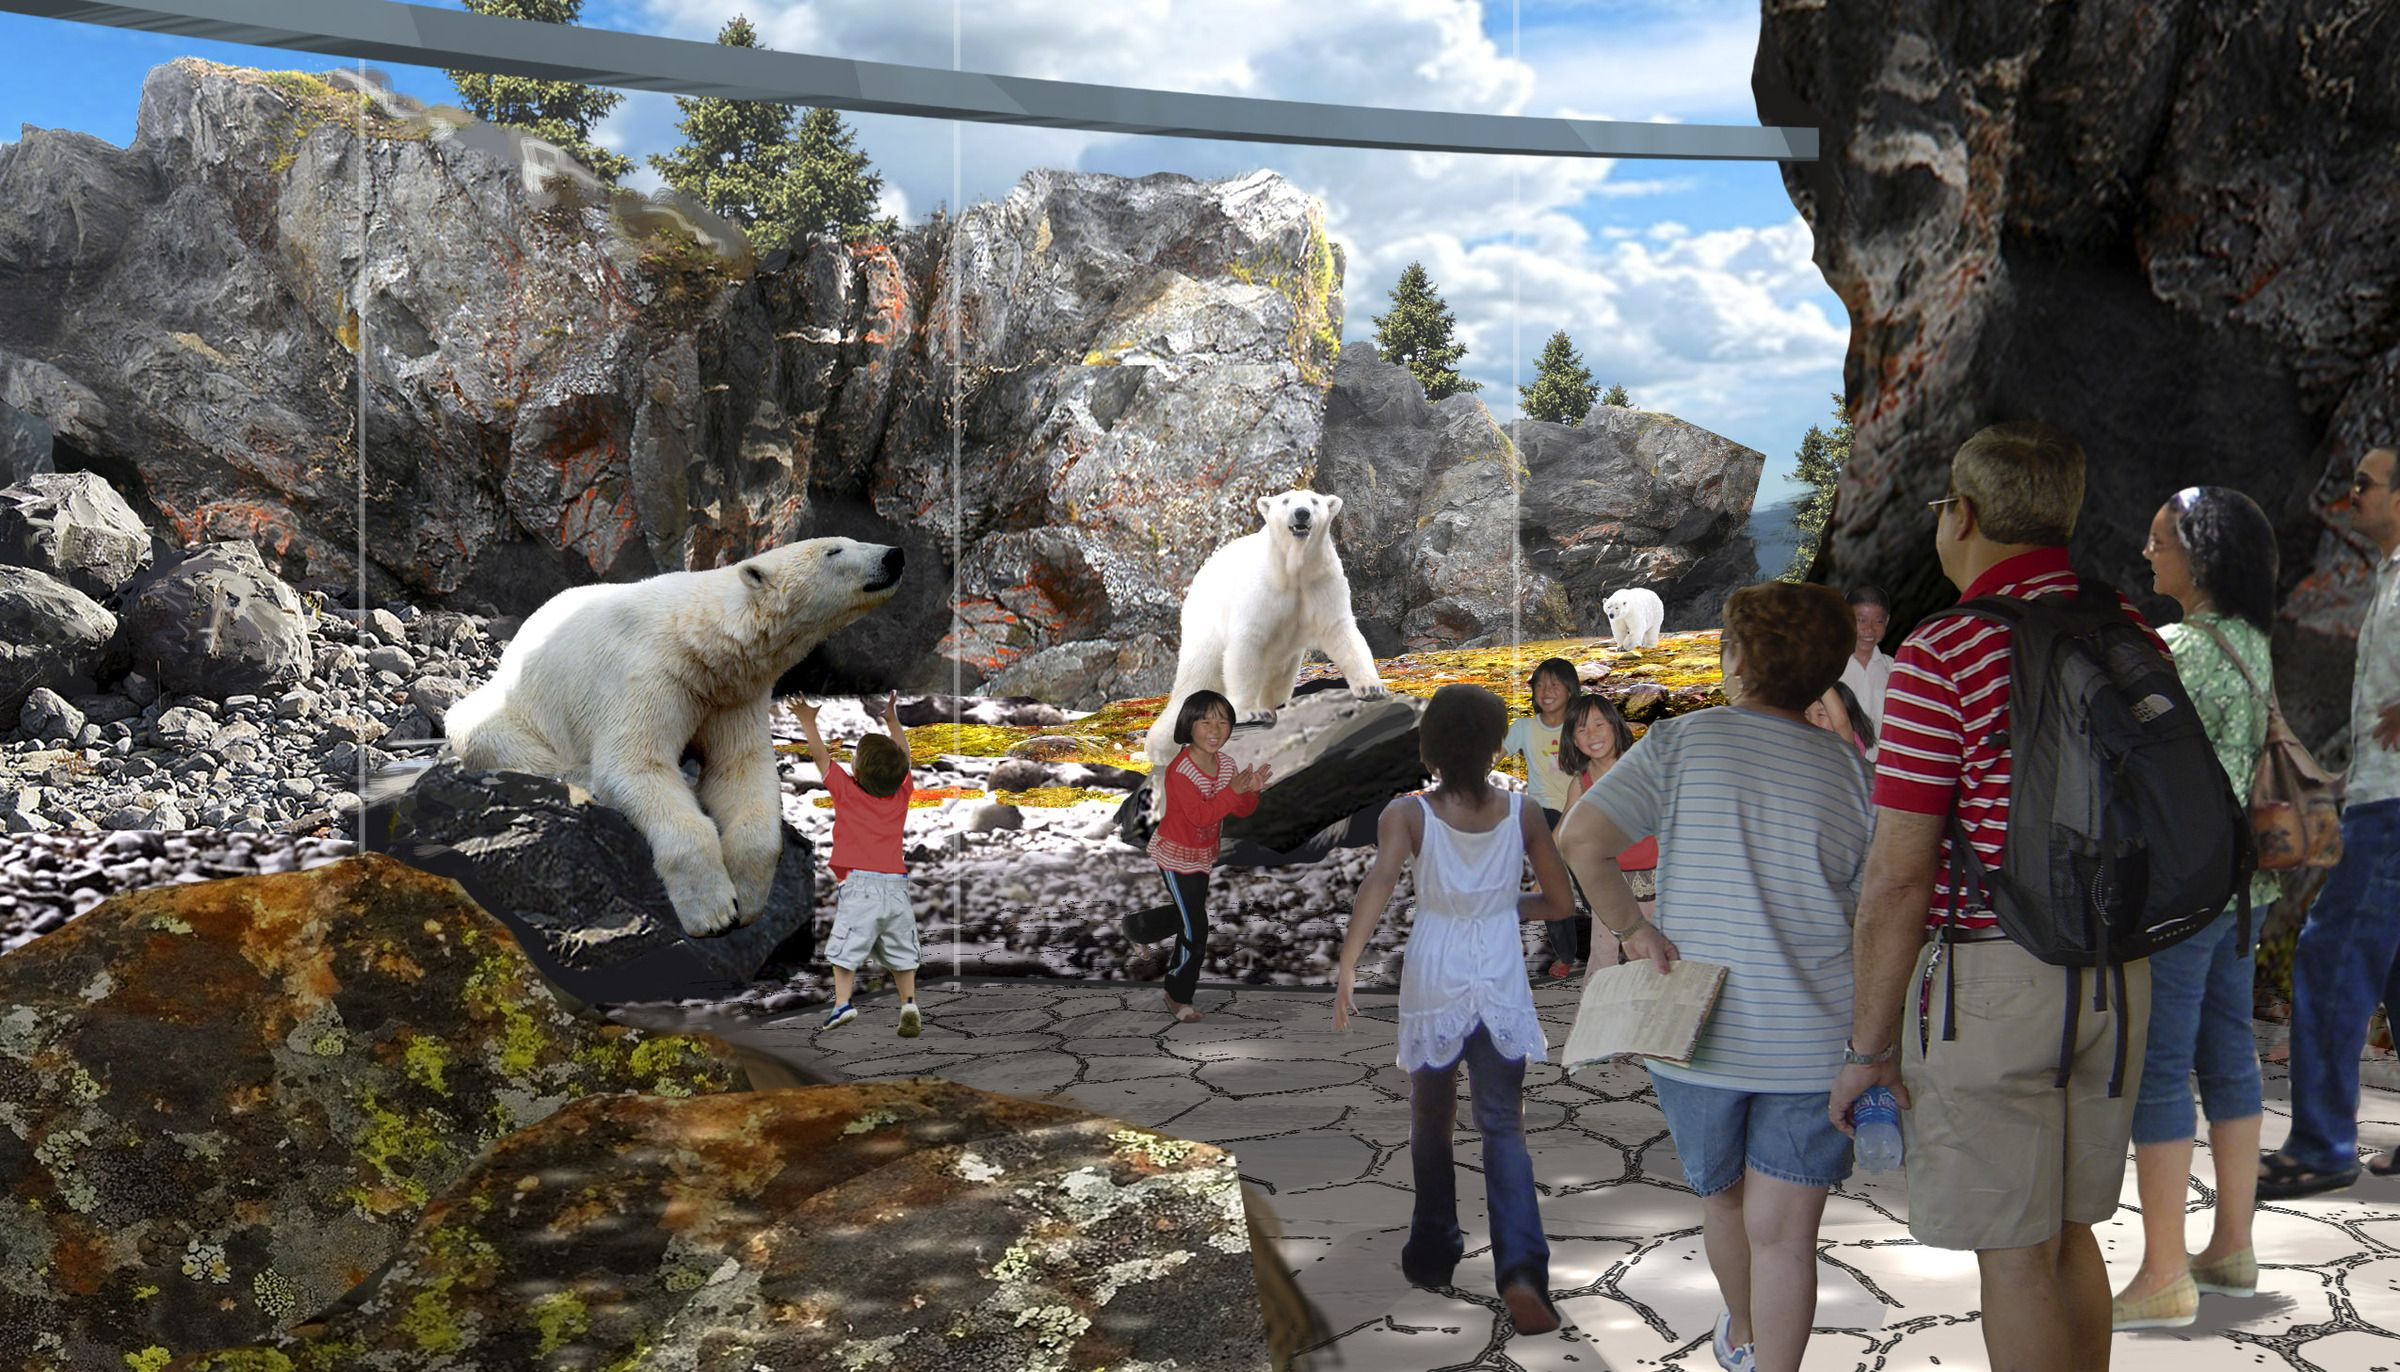 image relating to Printable Riverbanks Zoo Coupons known as Saint Louis Zoo McDonnell Polar Undergo Simple fact as a result of PGAV